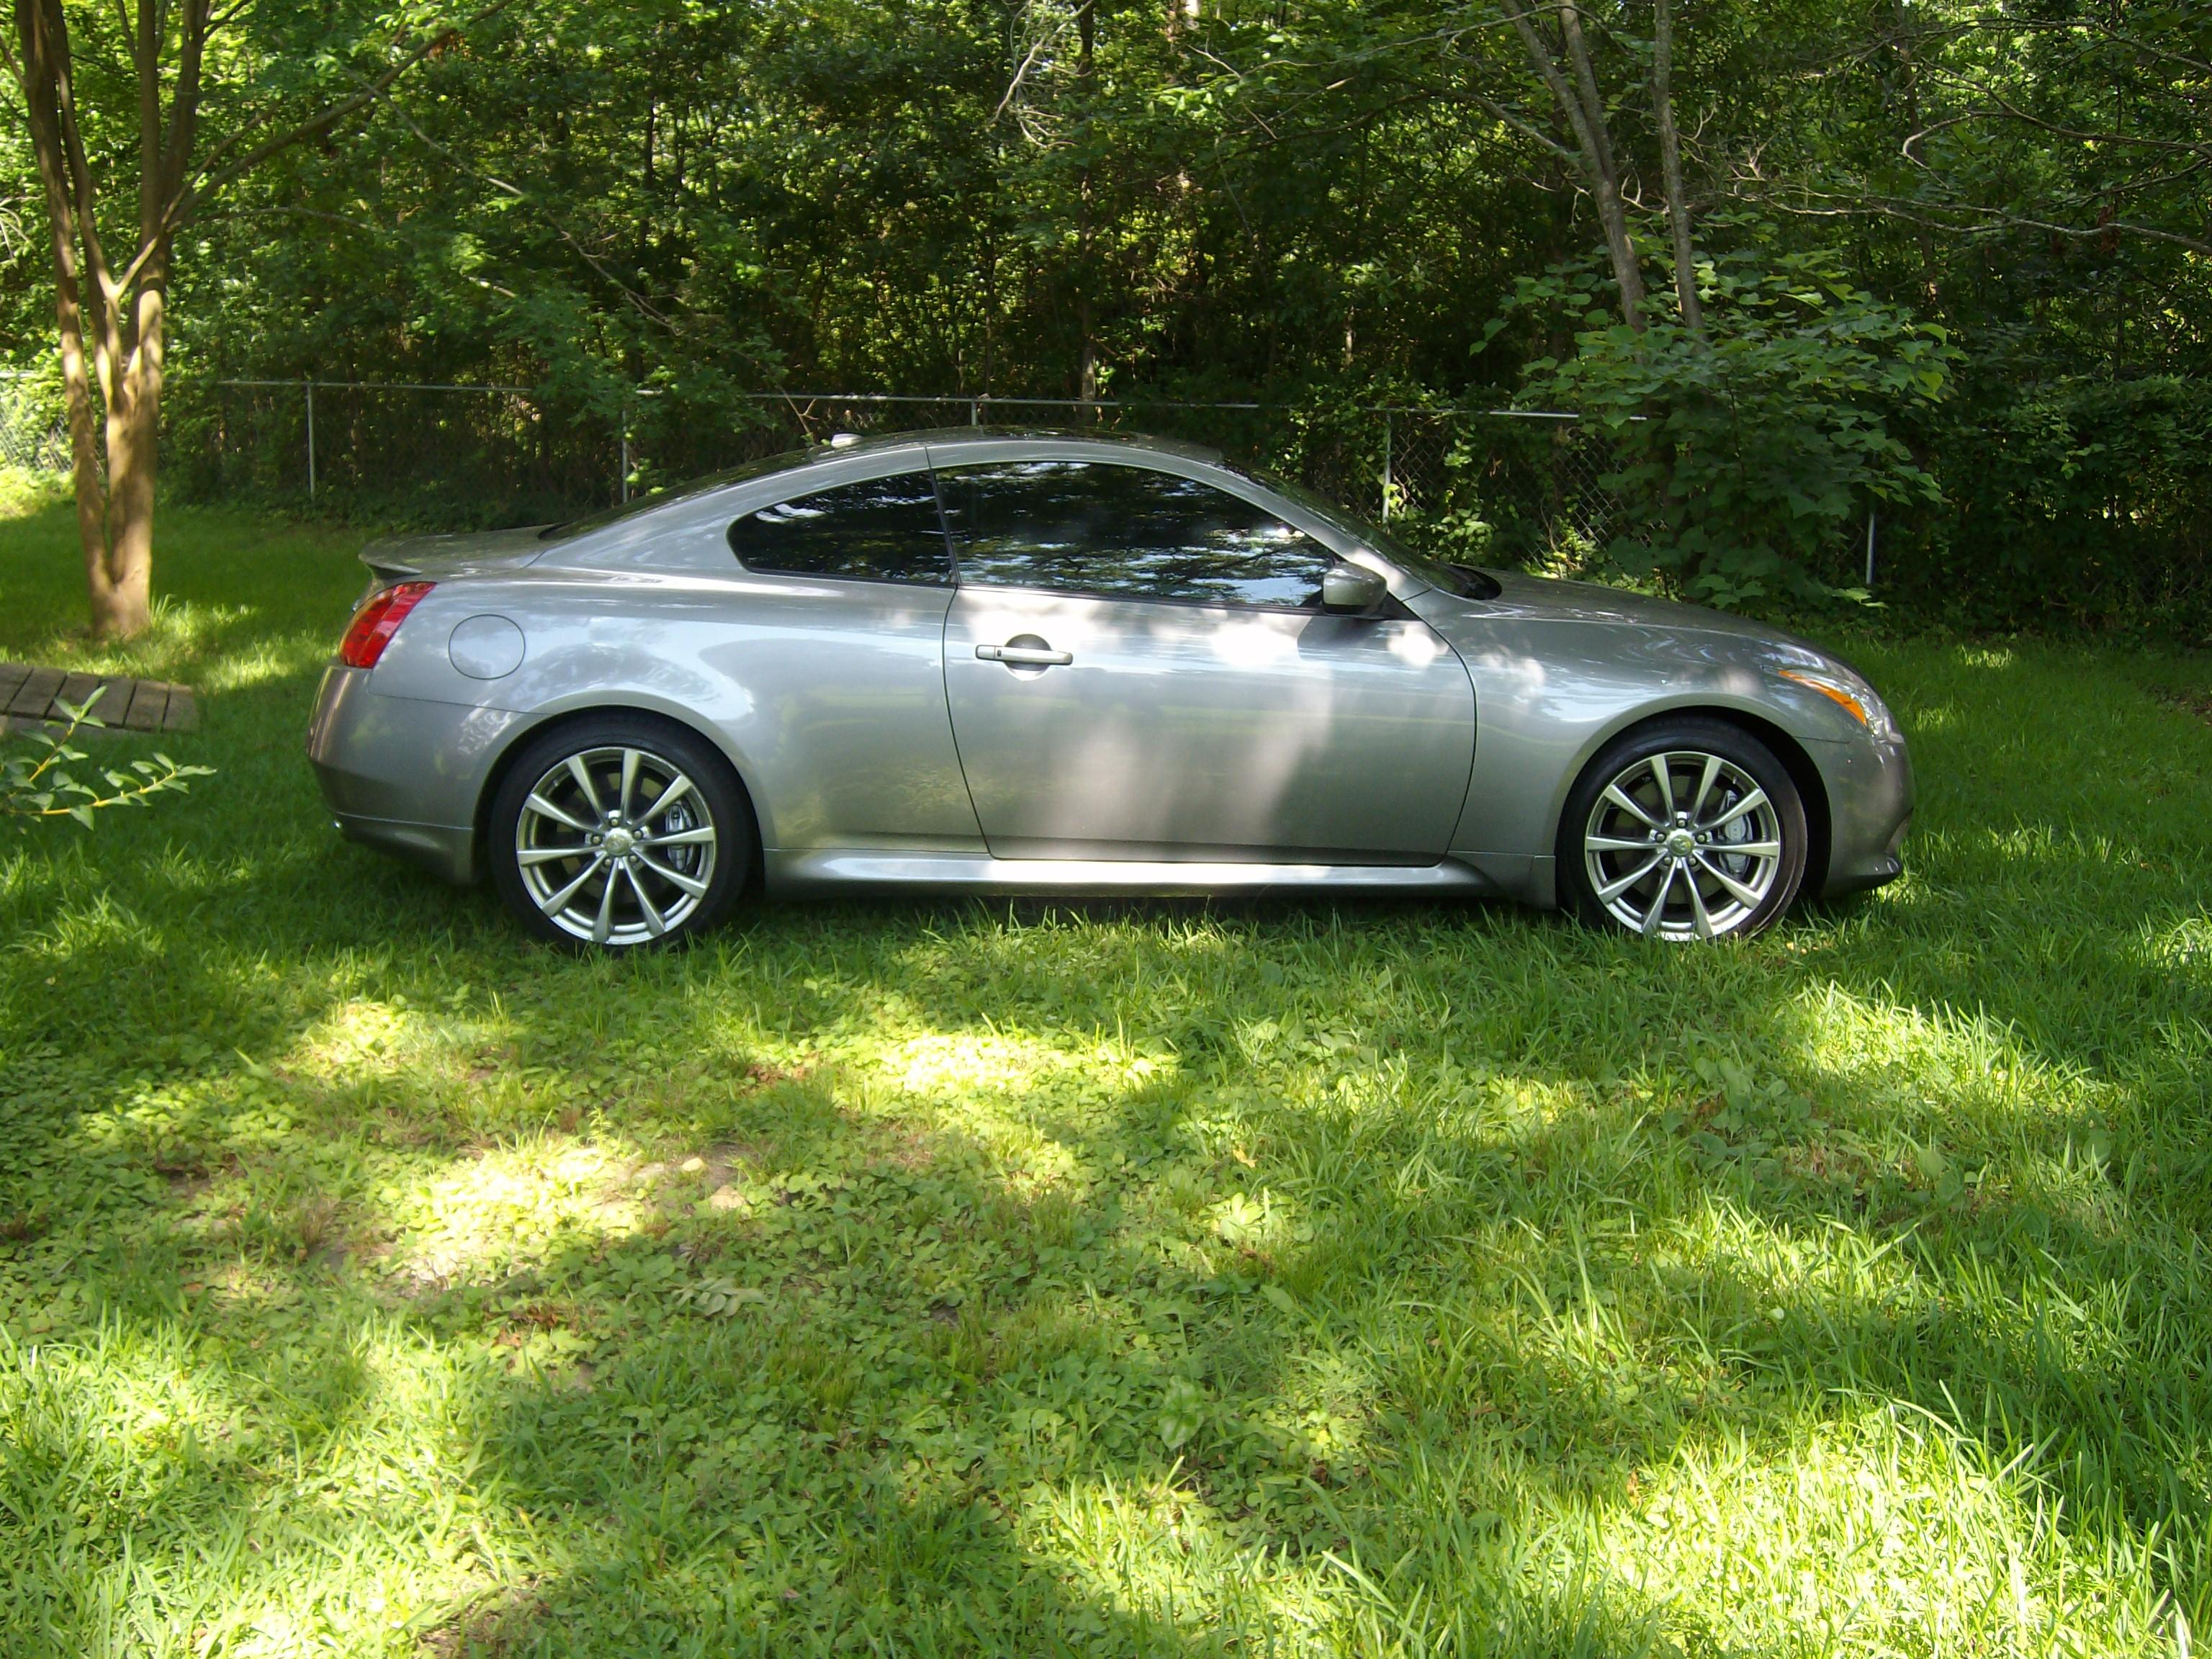 offtop 39 s 2009 infiniti g g37 sport coupe 2d in ridgeland ms. Black Bedroom Furniture Sets. Home Design Ideas